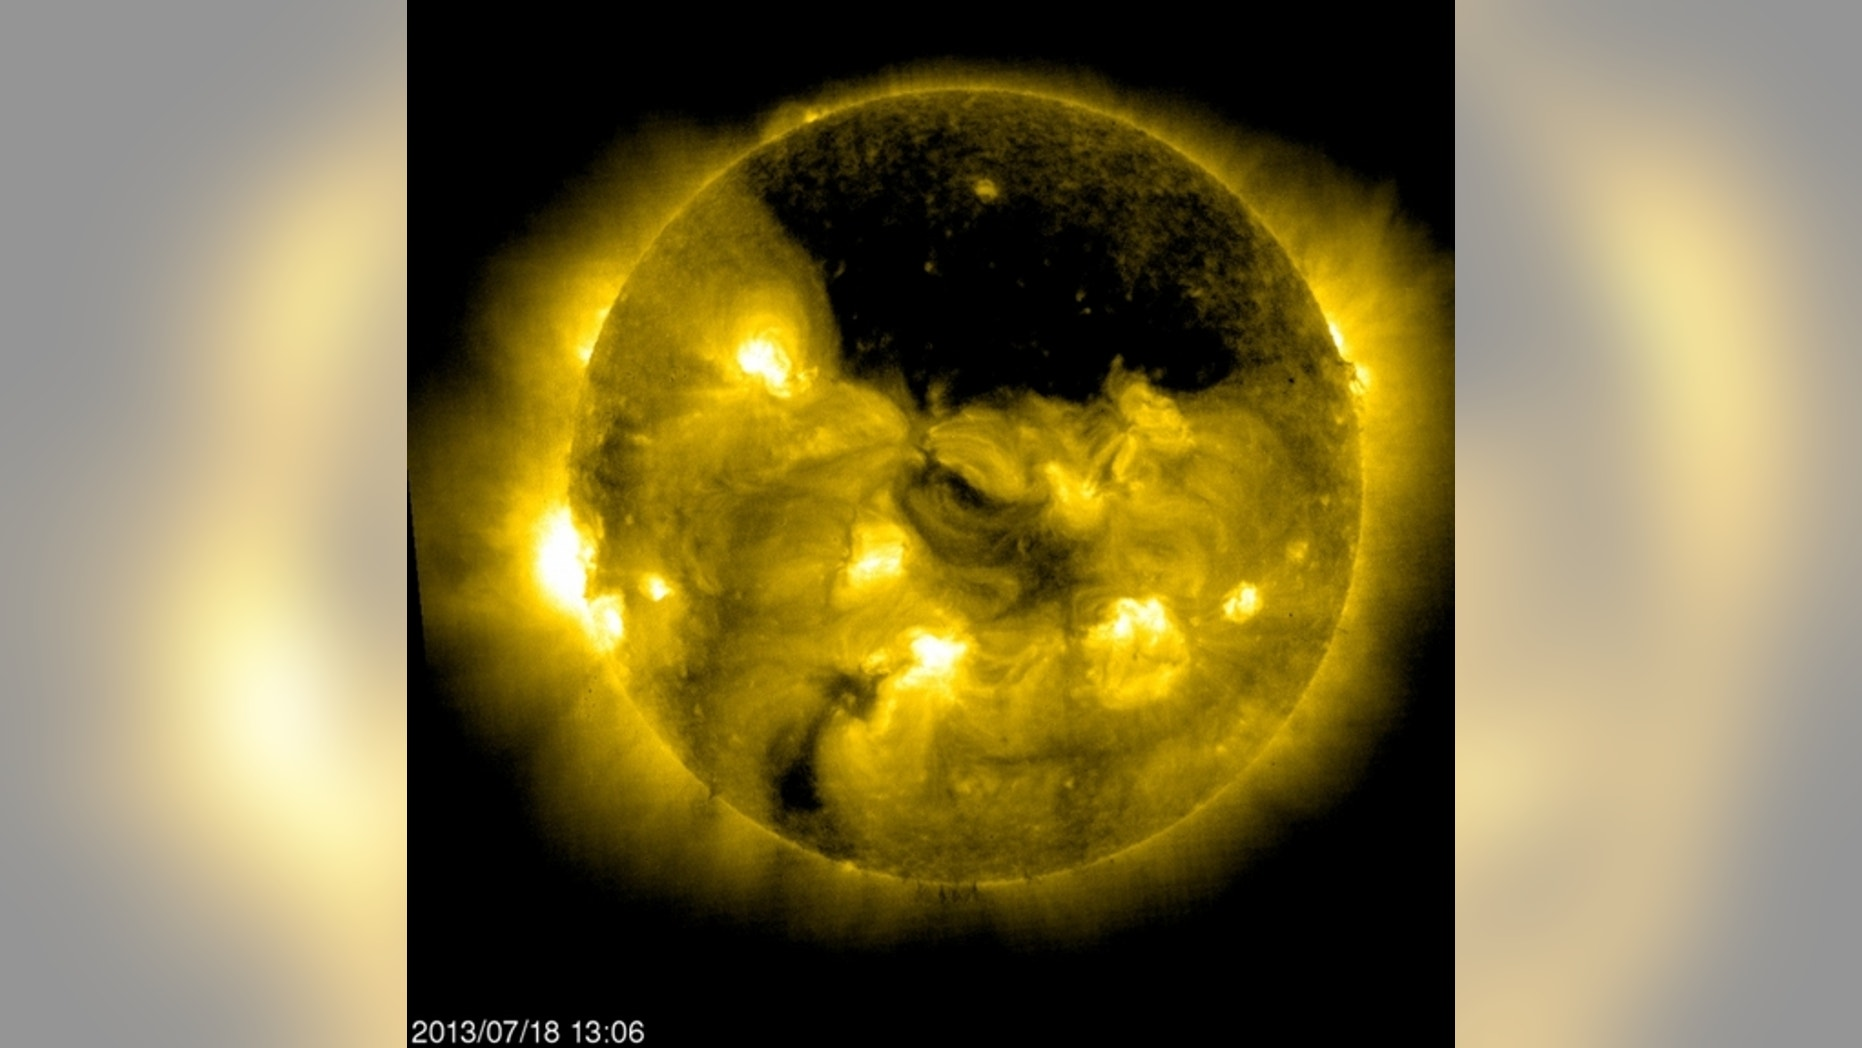 The European Space Agency/NASA Solar and Heliospheric Observatory, or SOHO, captured this image of a gigantic coronal hole hovering over the sun's north pole on July 18, 2013, at 9:06 a.m. EDT.